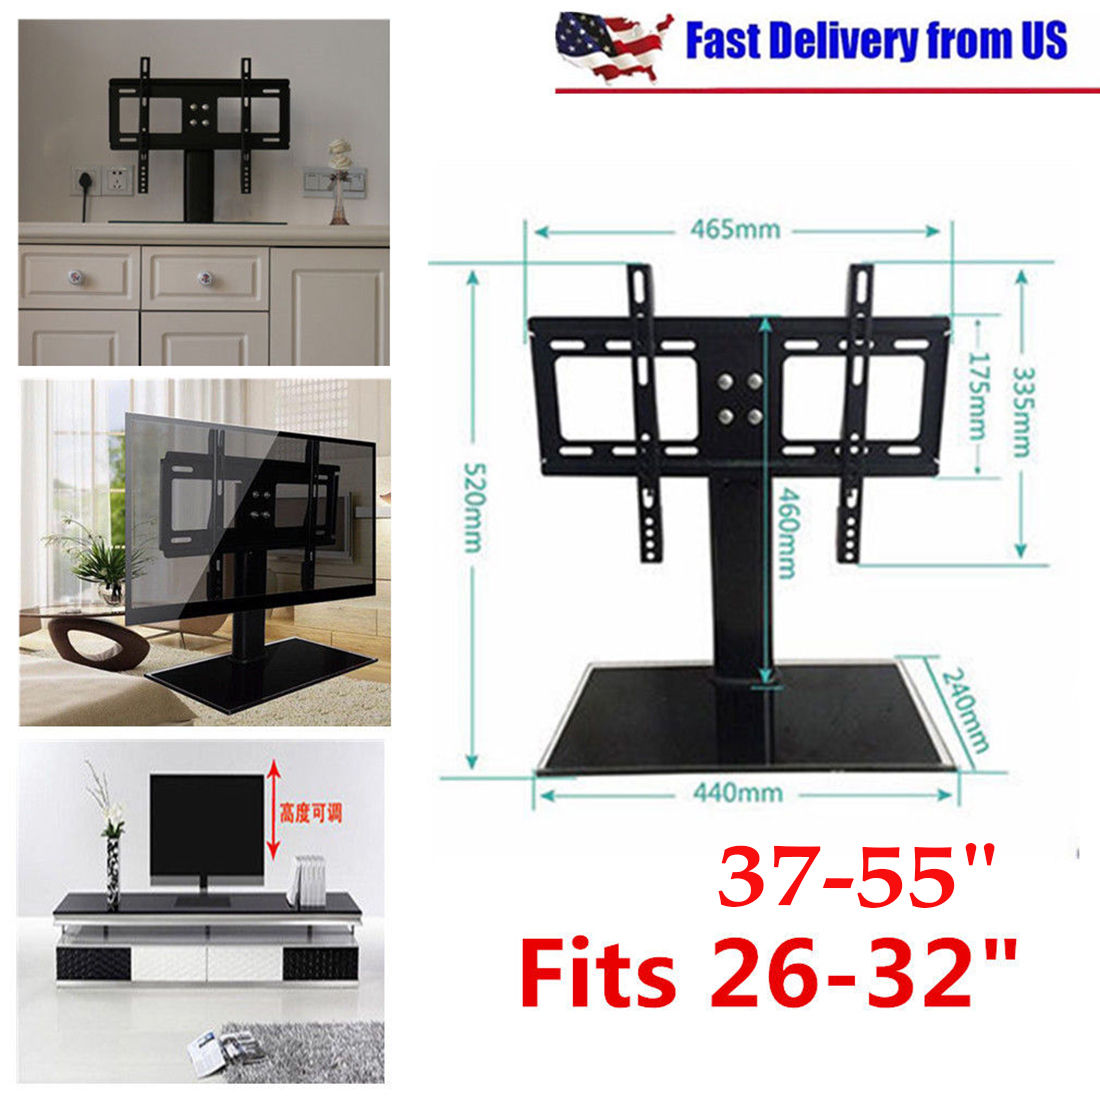 2017 New Adjustable Universal TV Stand Pedestal Base Wall Mount Flat Screen TVs